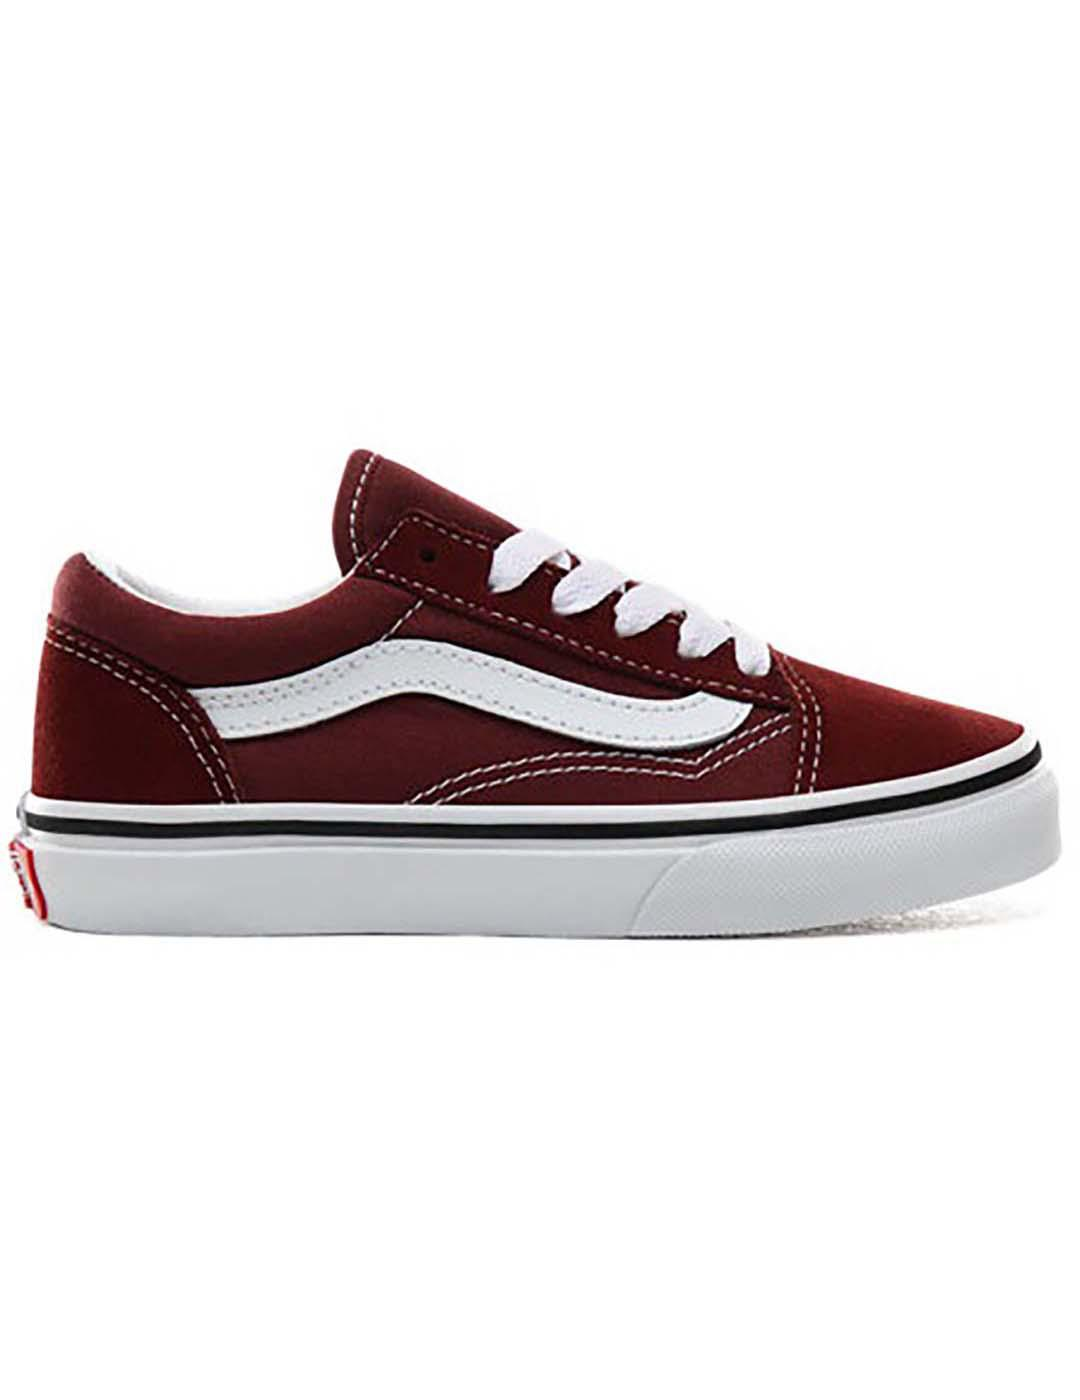 2vans authentic granate mujer